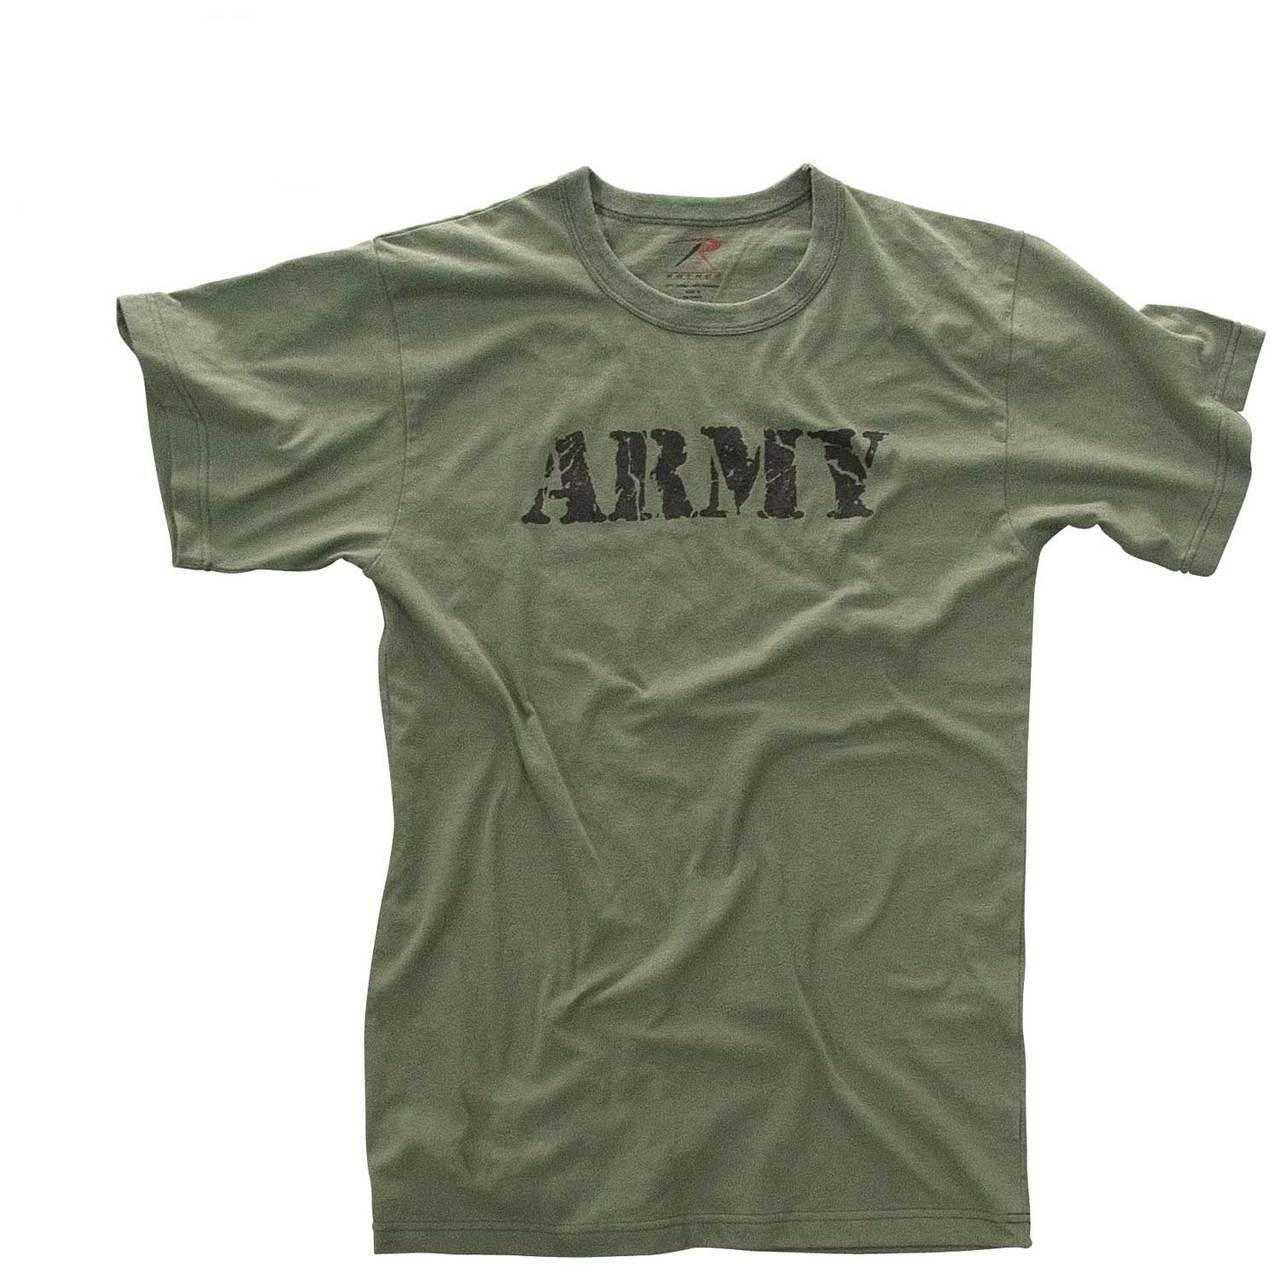 Shop Vintage Army T Shirt Fatigues Army Navy Gear